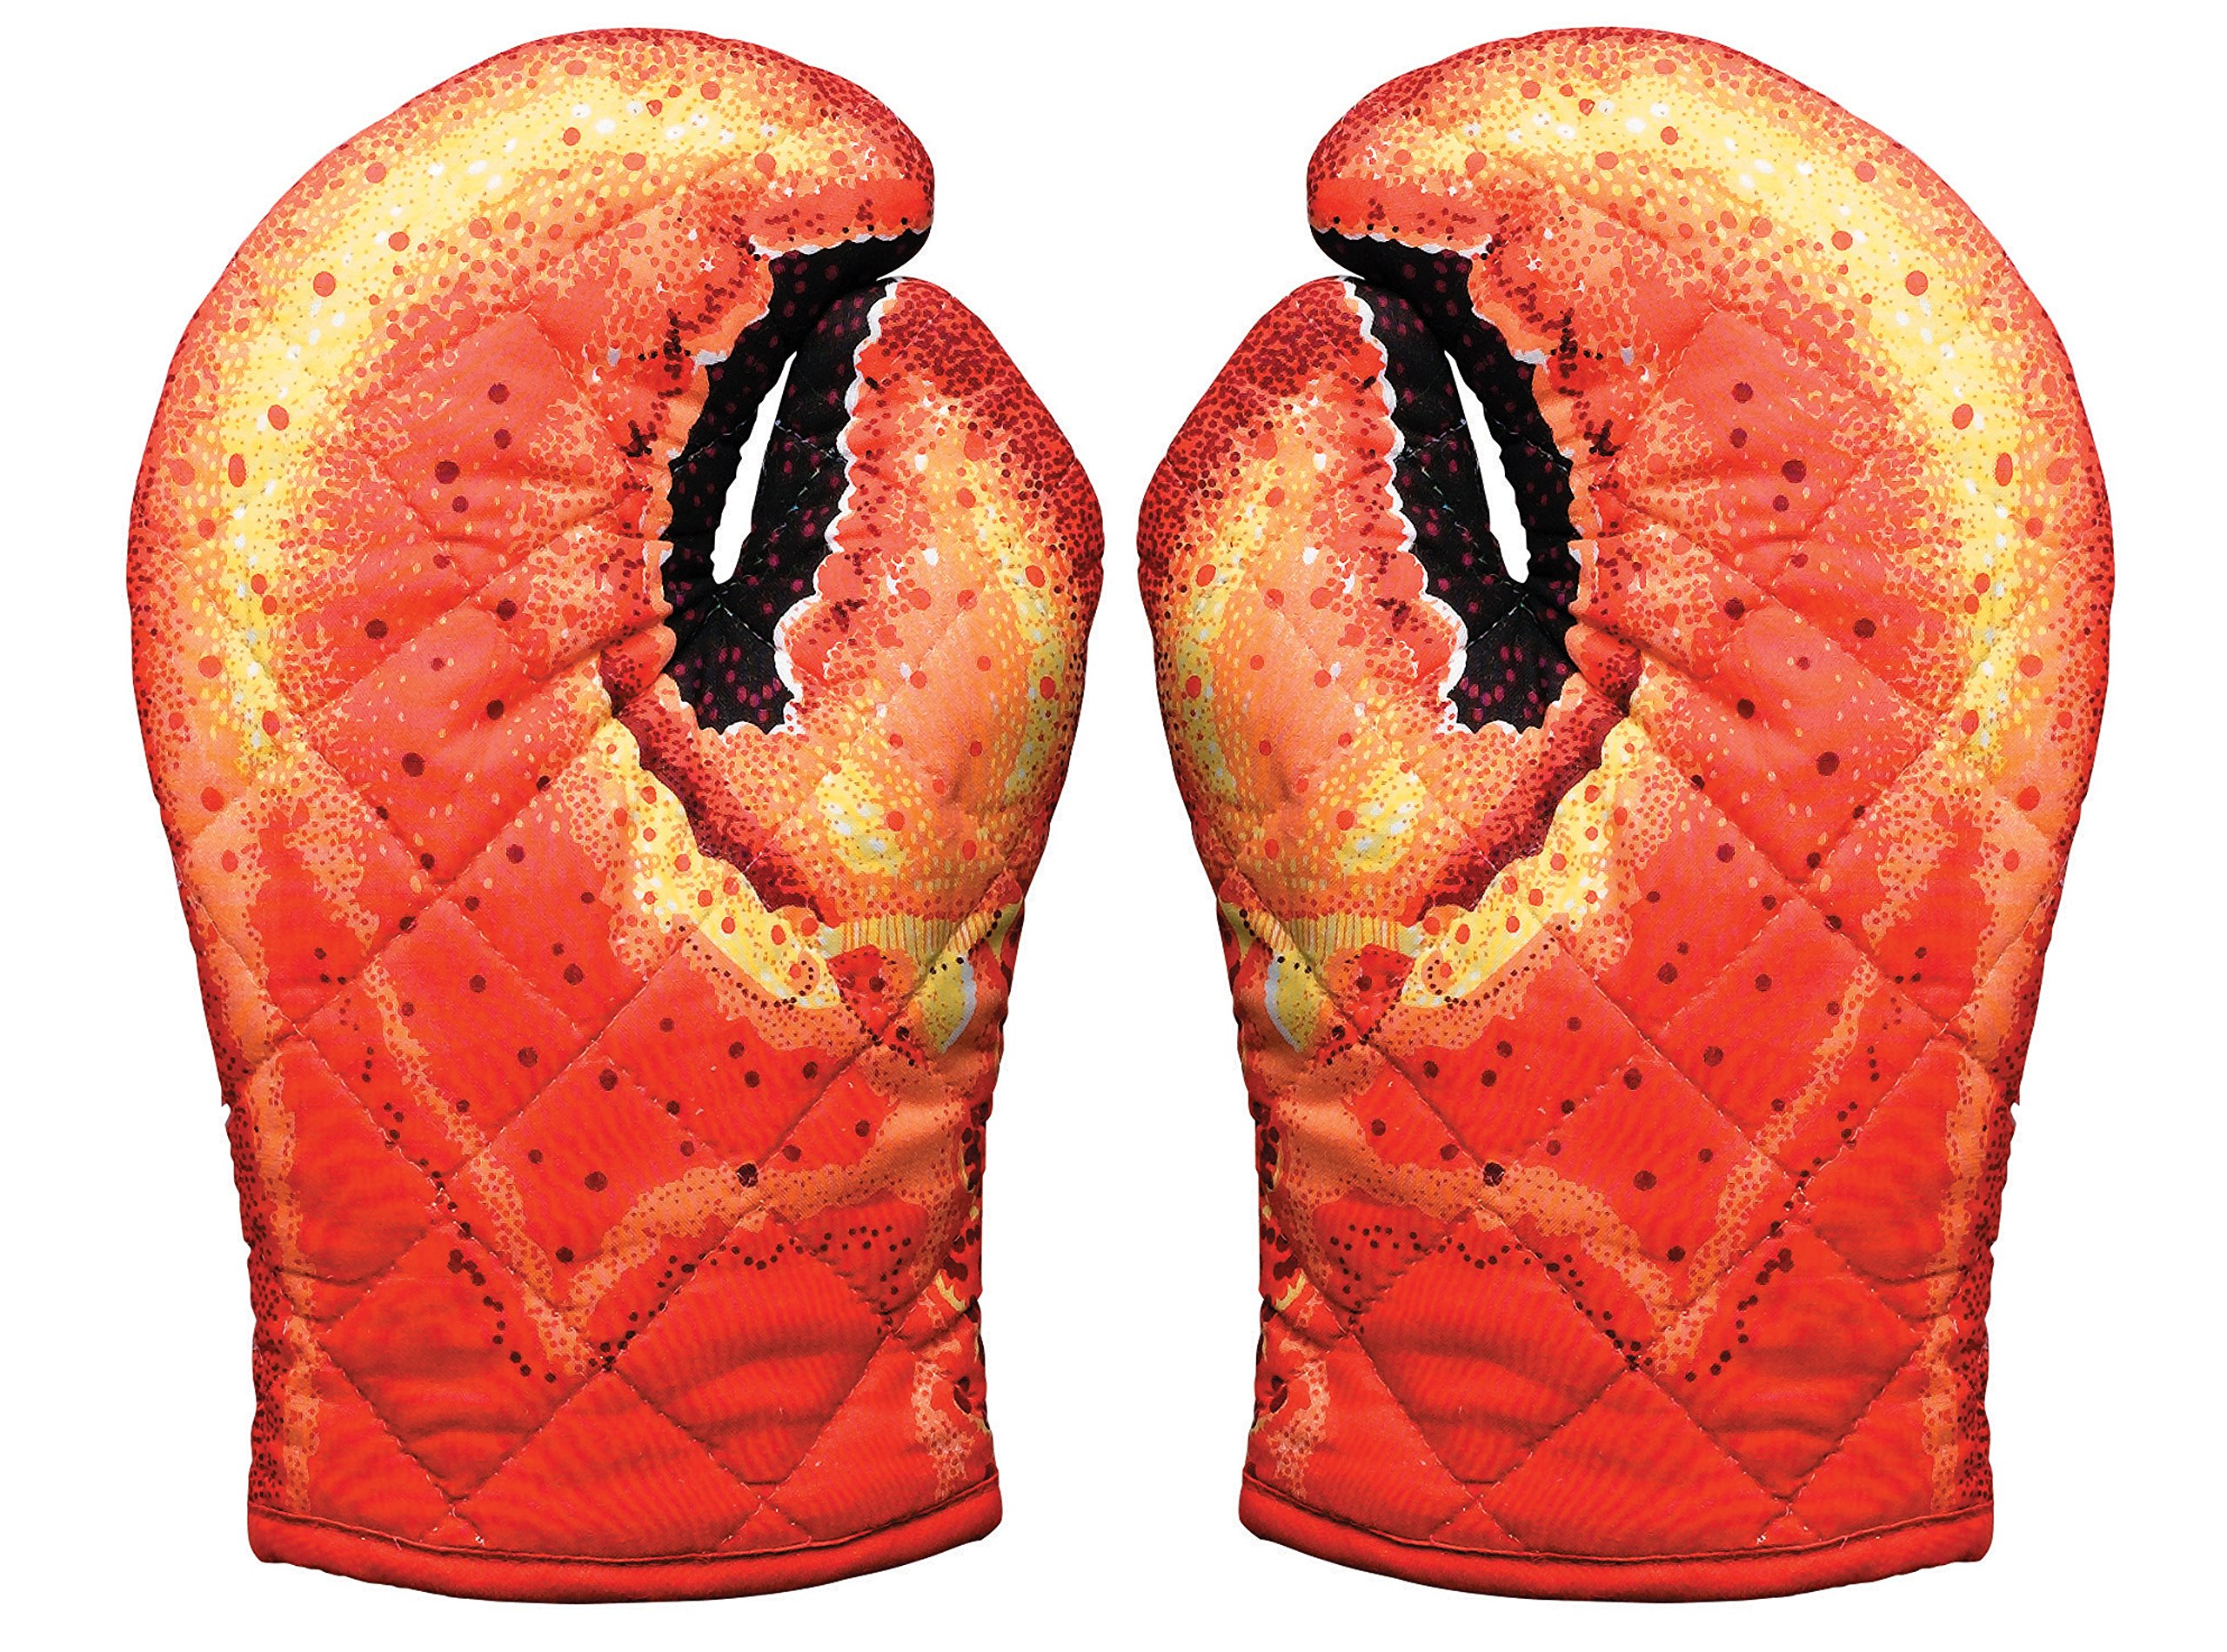 Lobster Claw Oven Mitts, Set of 2, Quilted Cotton, Designed for Light Duty Use, by Boston Warehouse by Boston Warehouse